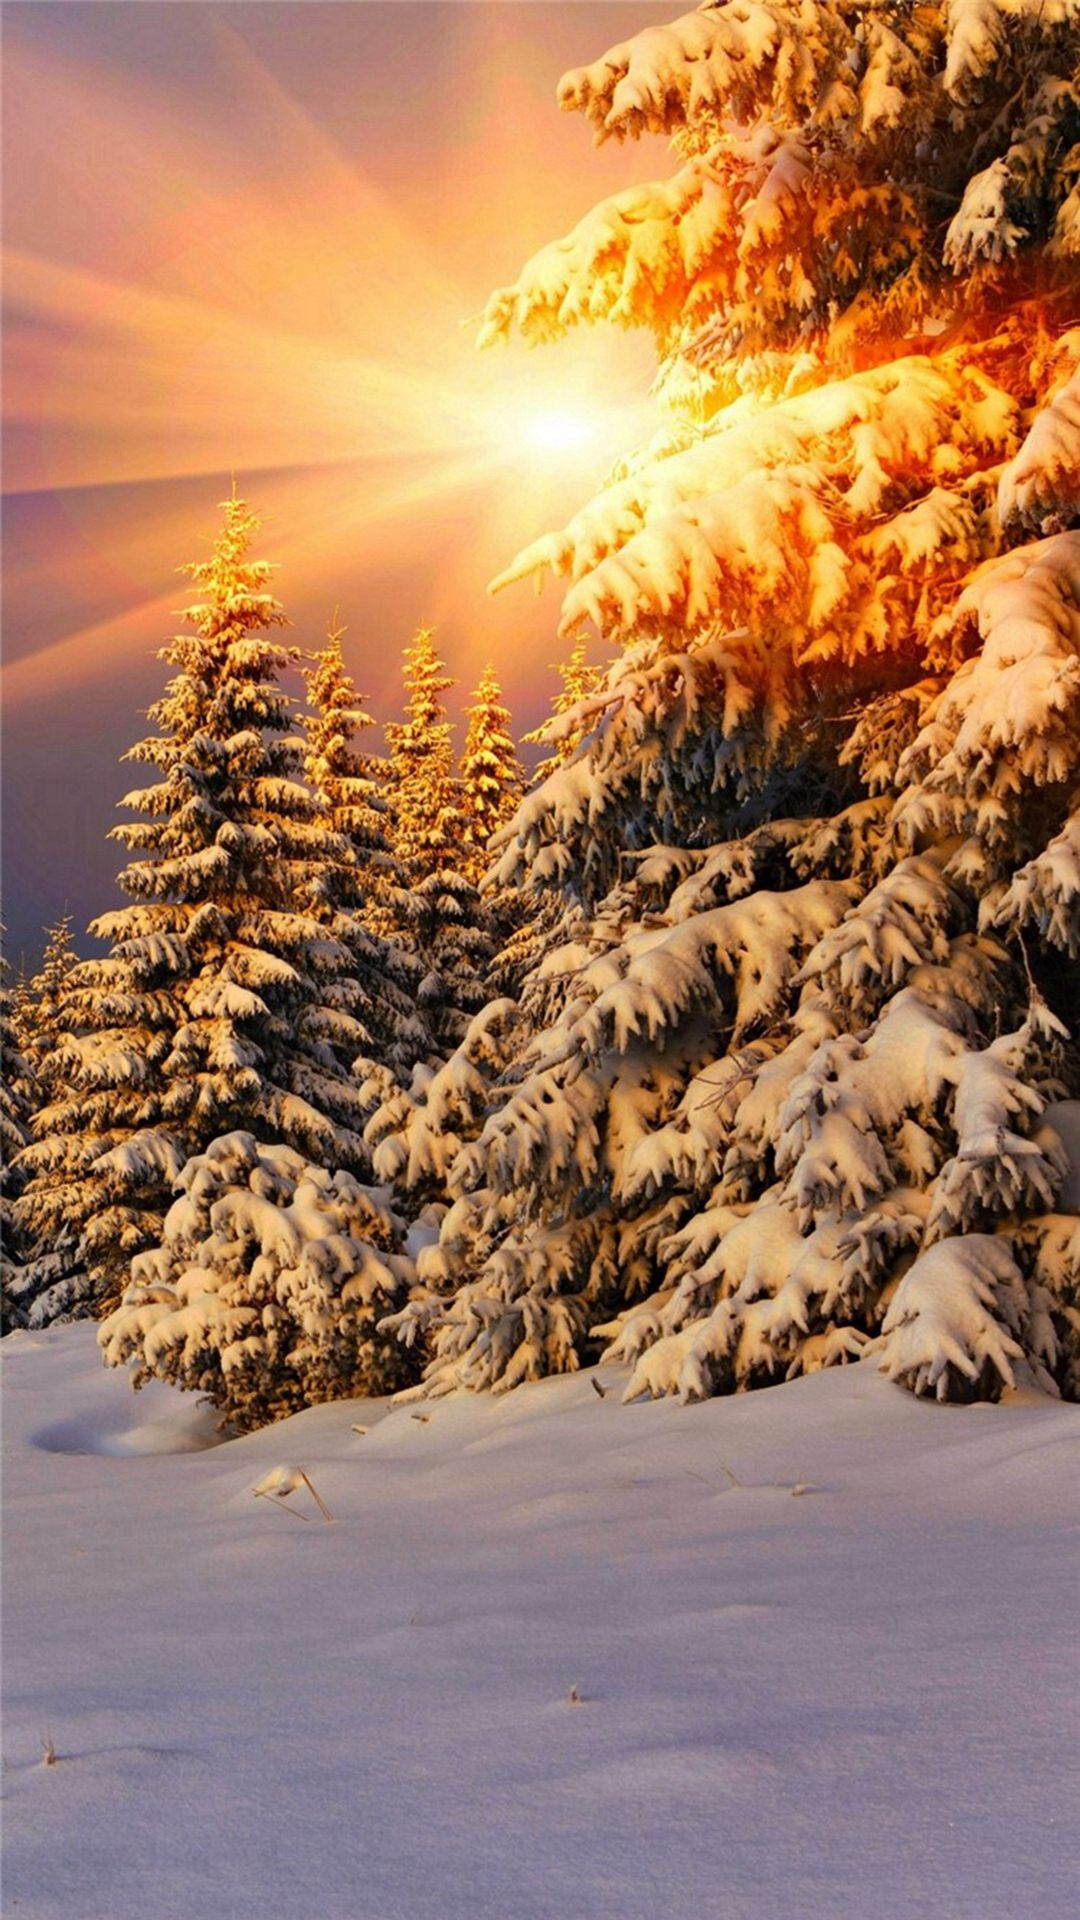 Snowy Pine Trees Sunshine Iphone 6 Wallpaper Download Iphone Wallpapers Ipad Wallpapers One Stop Download Winter Scenery Winter Landscape Winter Pictures Sunset forest snow winter spruce trees